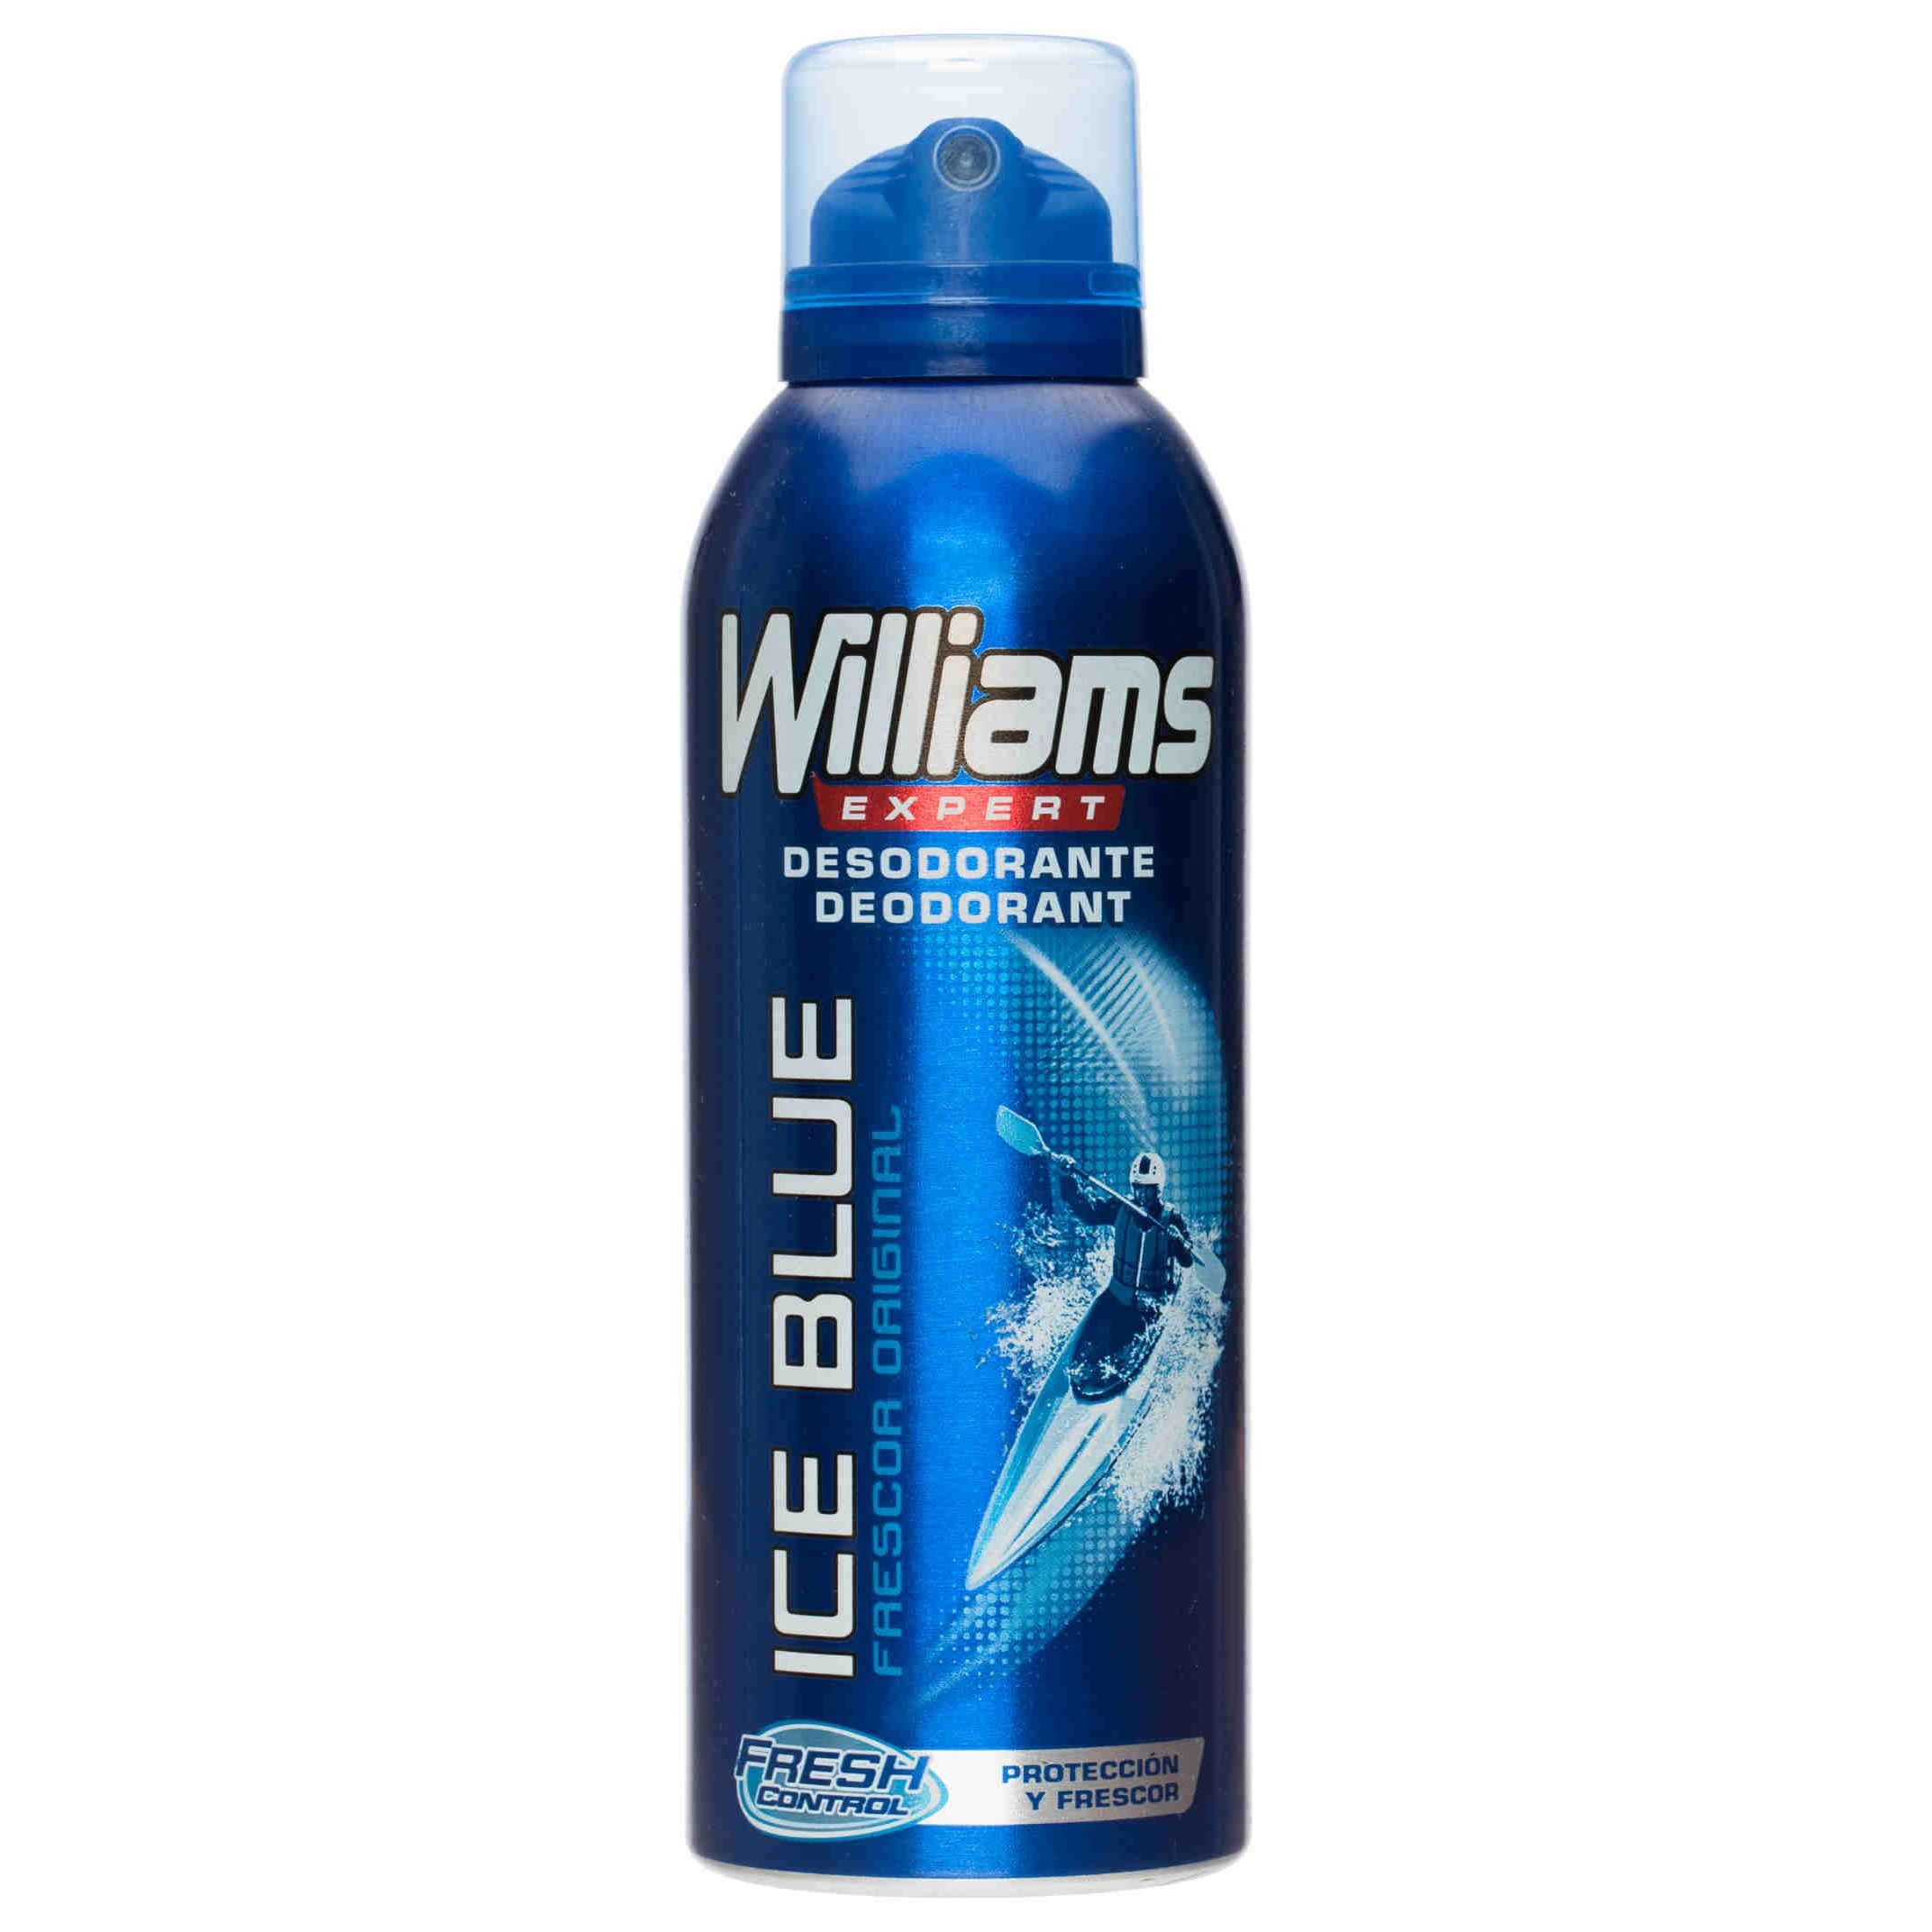 Williams desodorante ice blue de 20cl. en spray